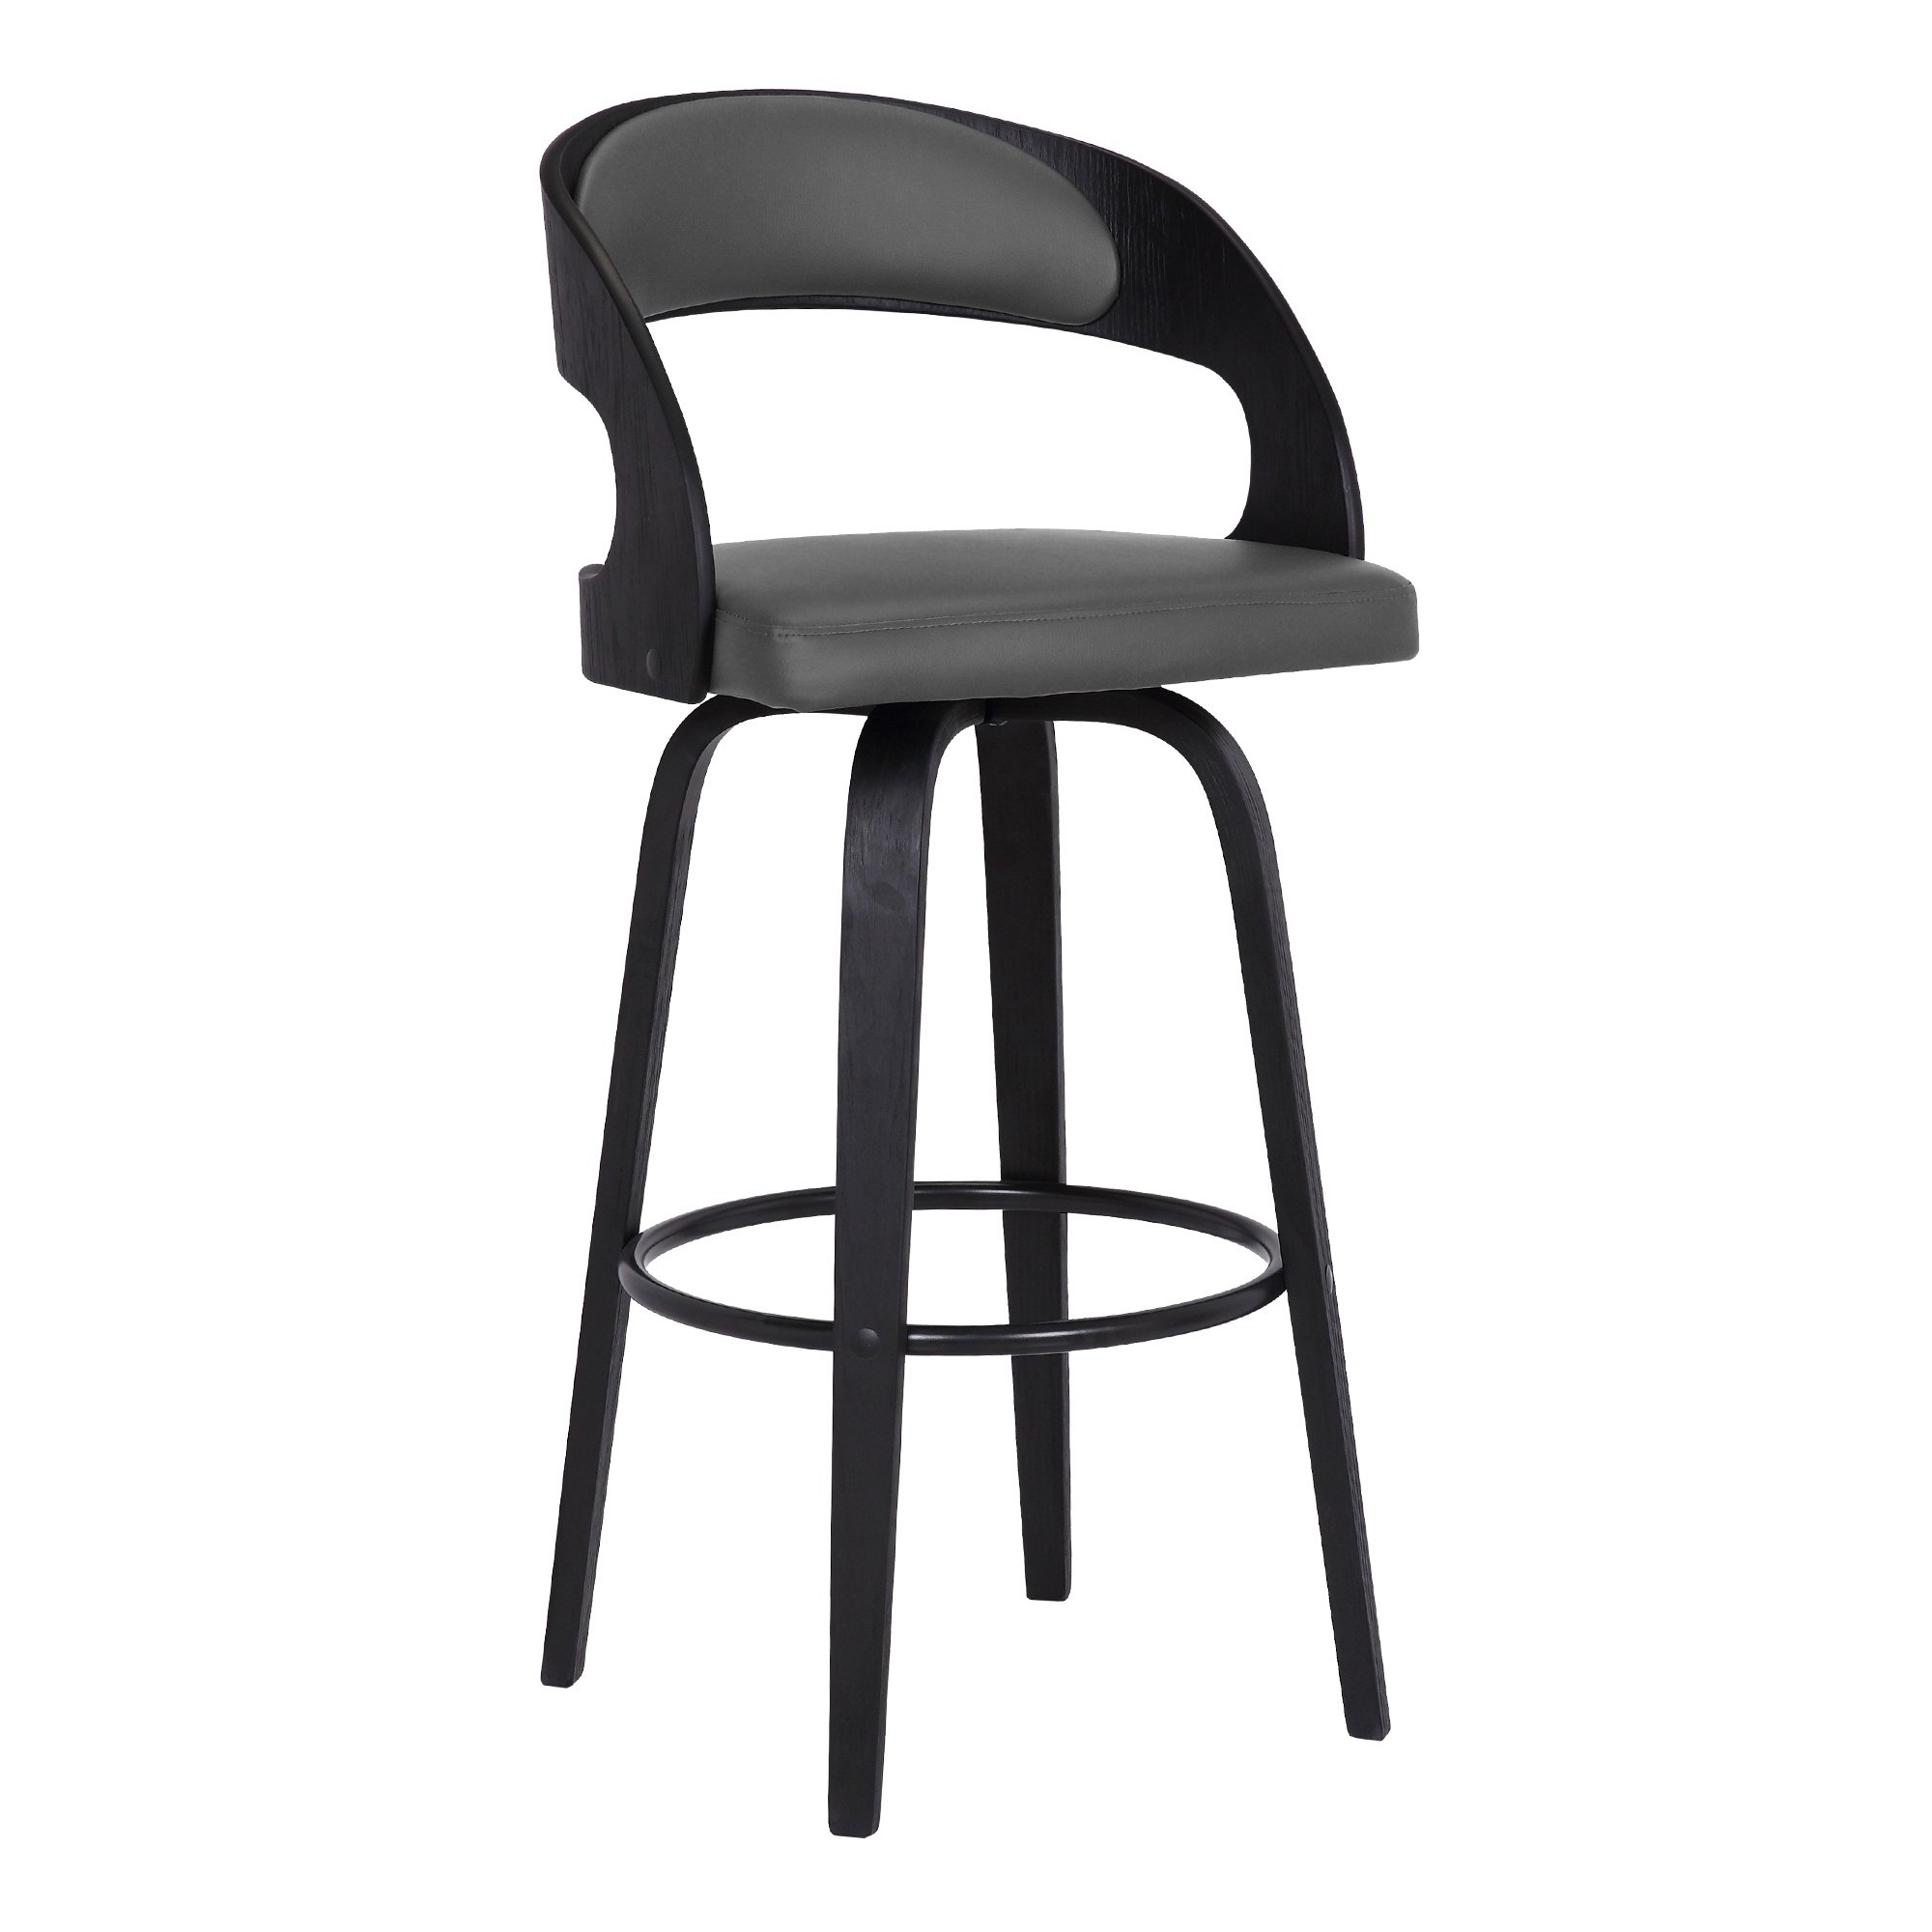 Shelly Contemporary Swivel Barstool In Black Brush Wood Finish And